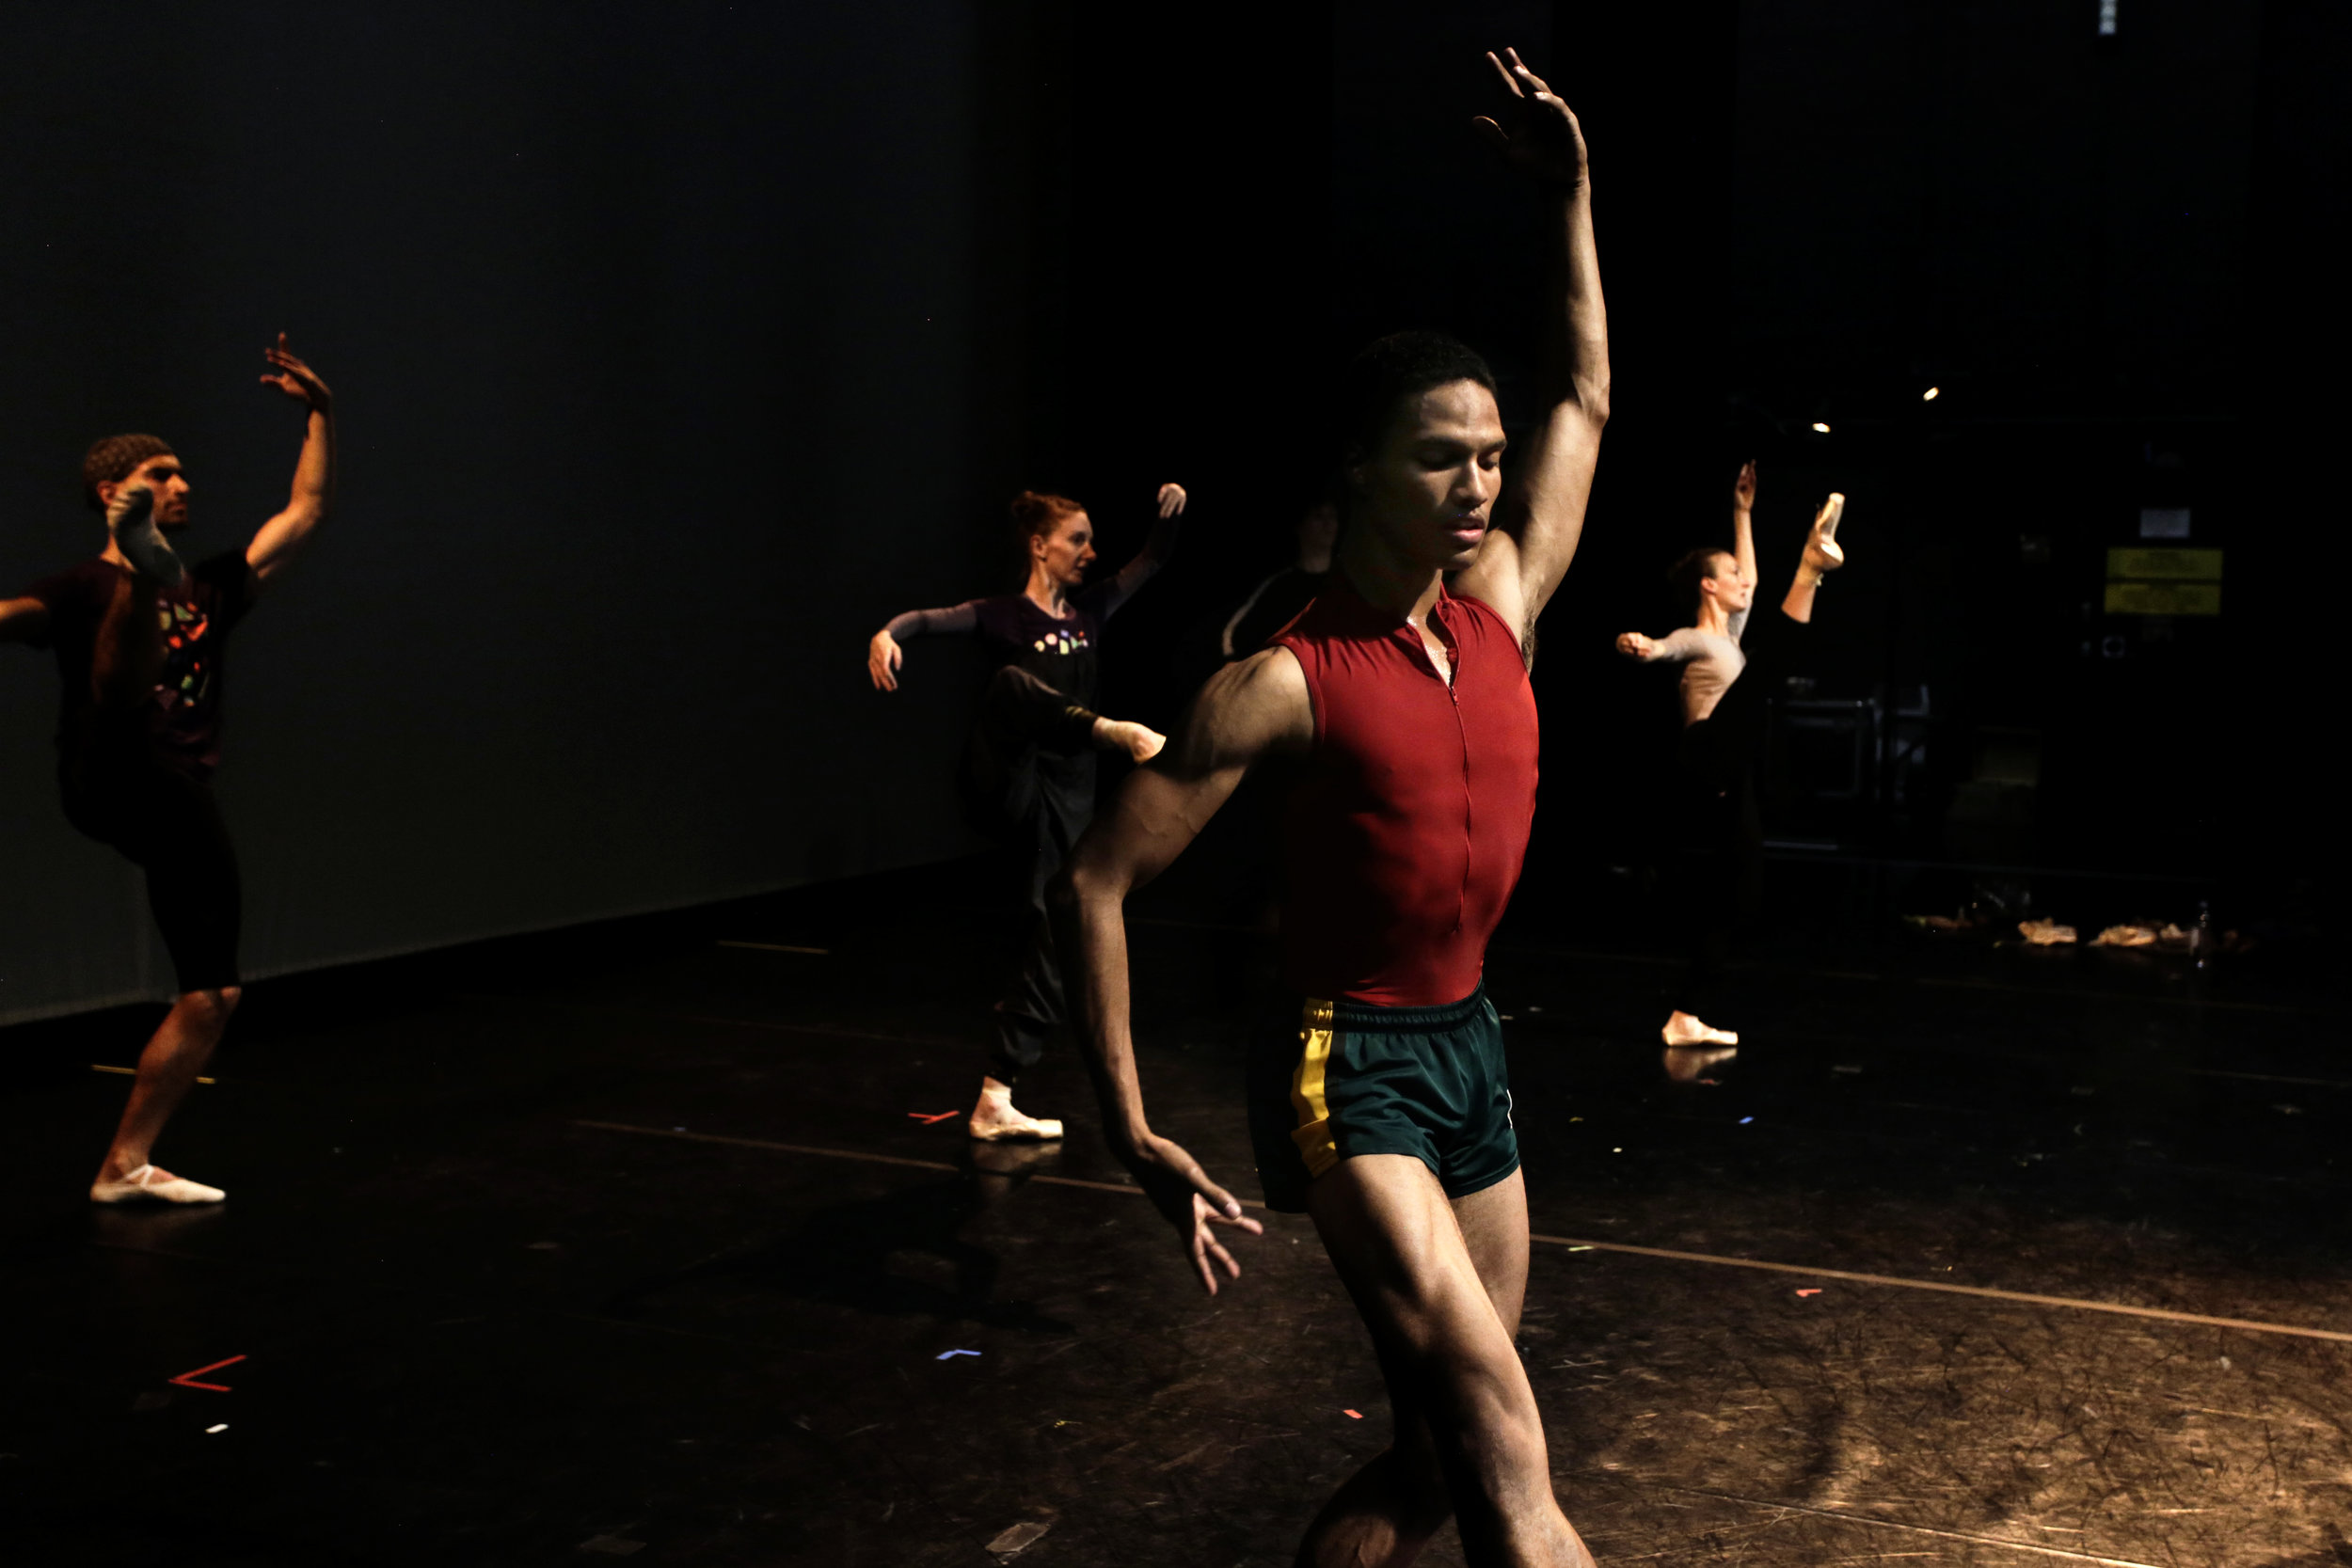 A member of The Royal Danish Ballet practices during a rehearsal at the Aarhus Concert Hall before a performance during the annual Aarhus Festuge.